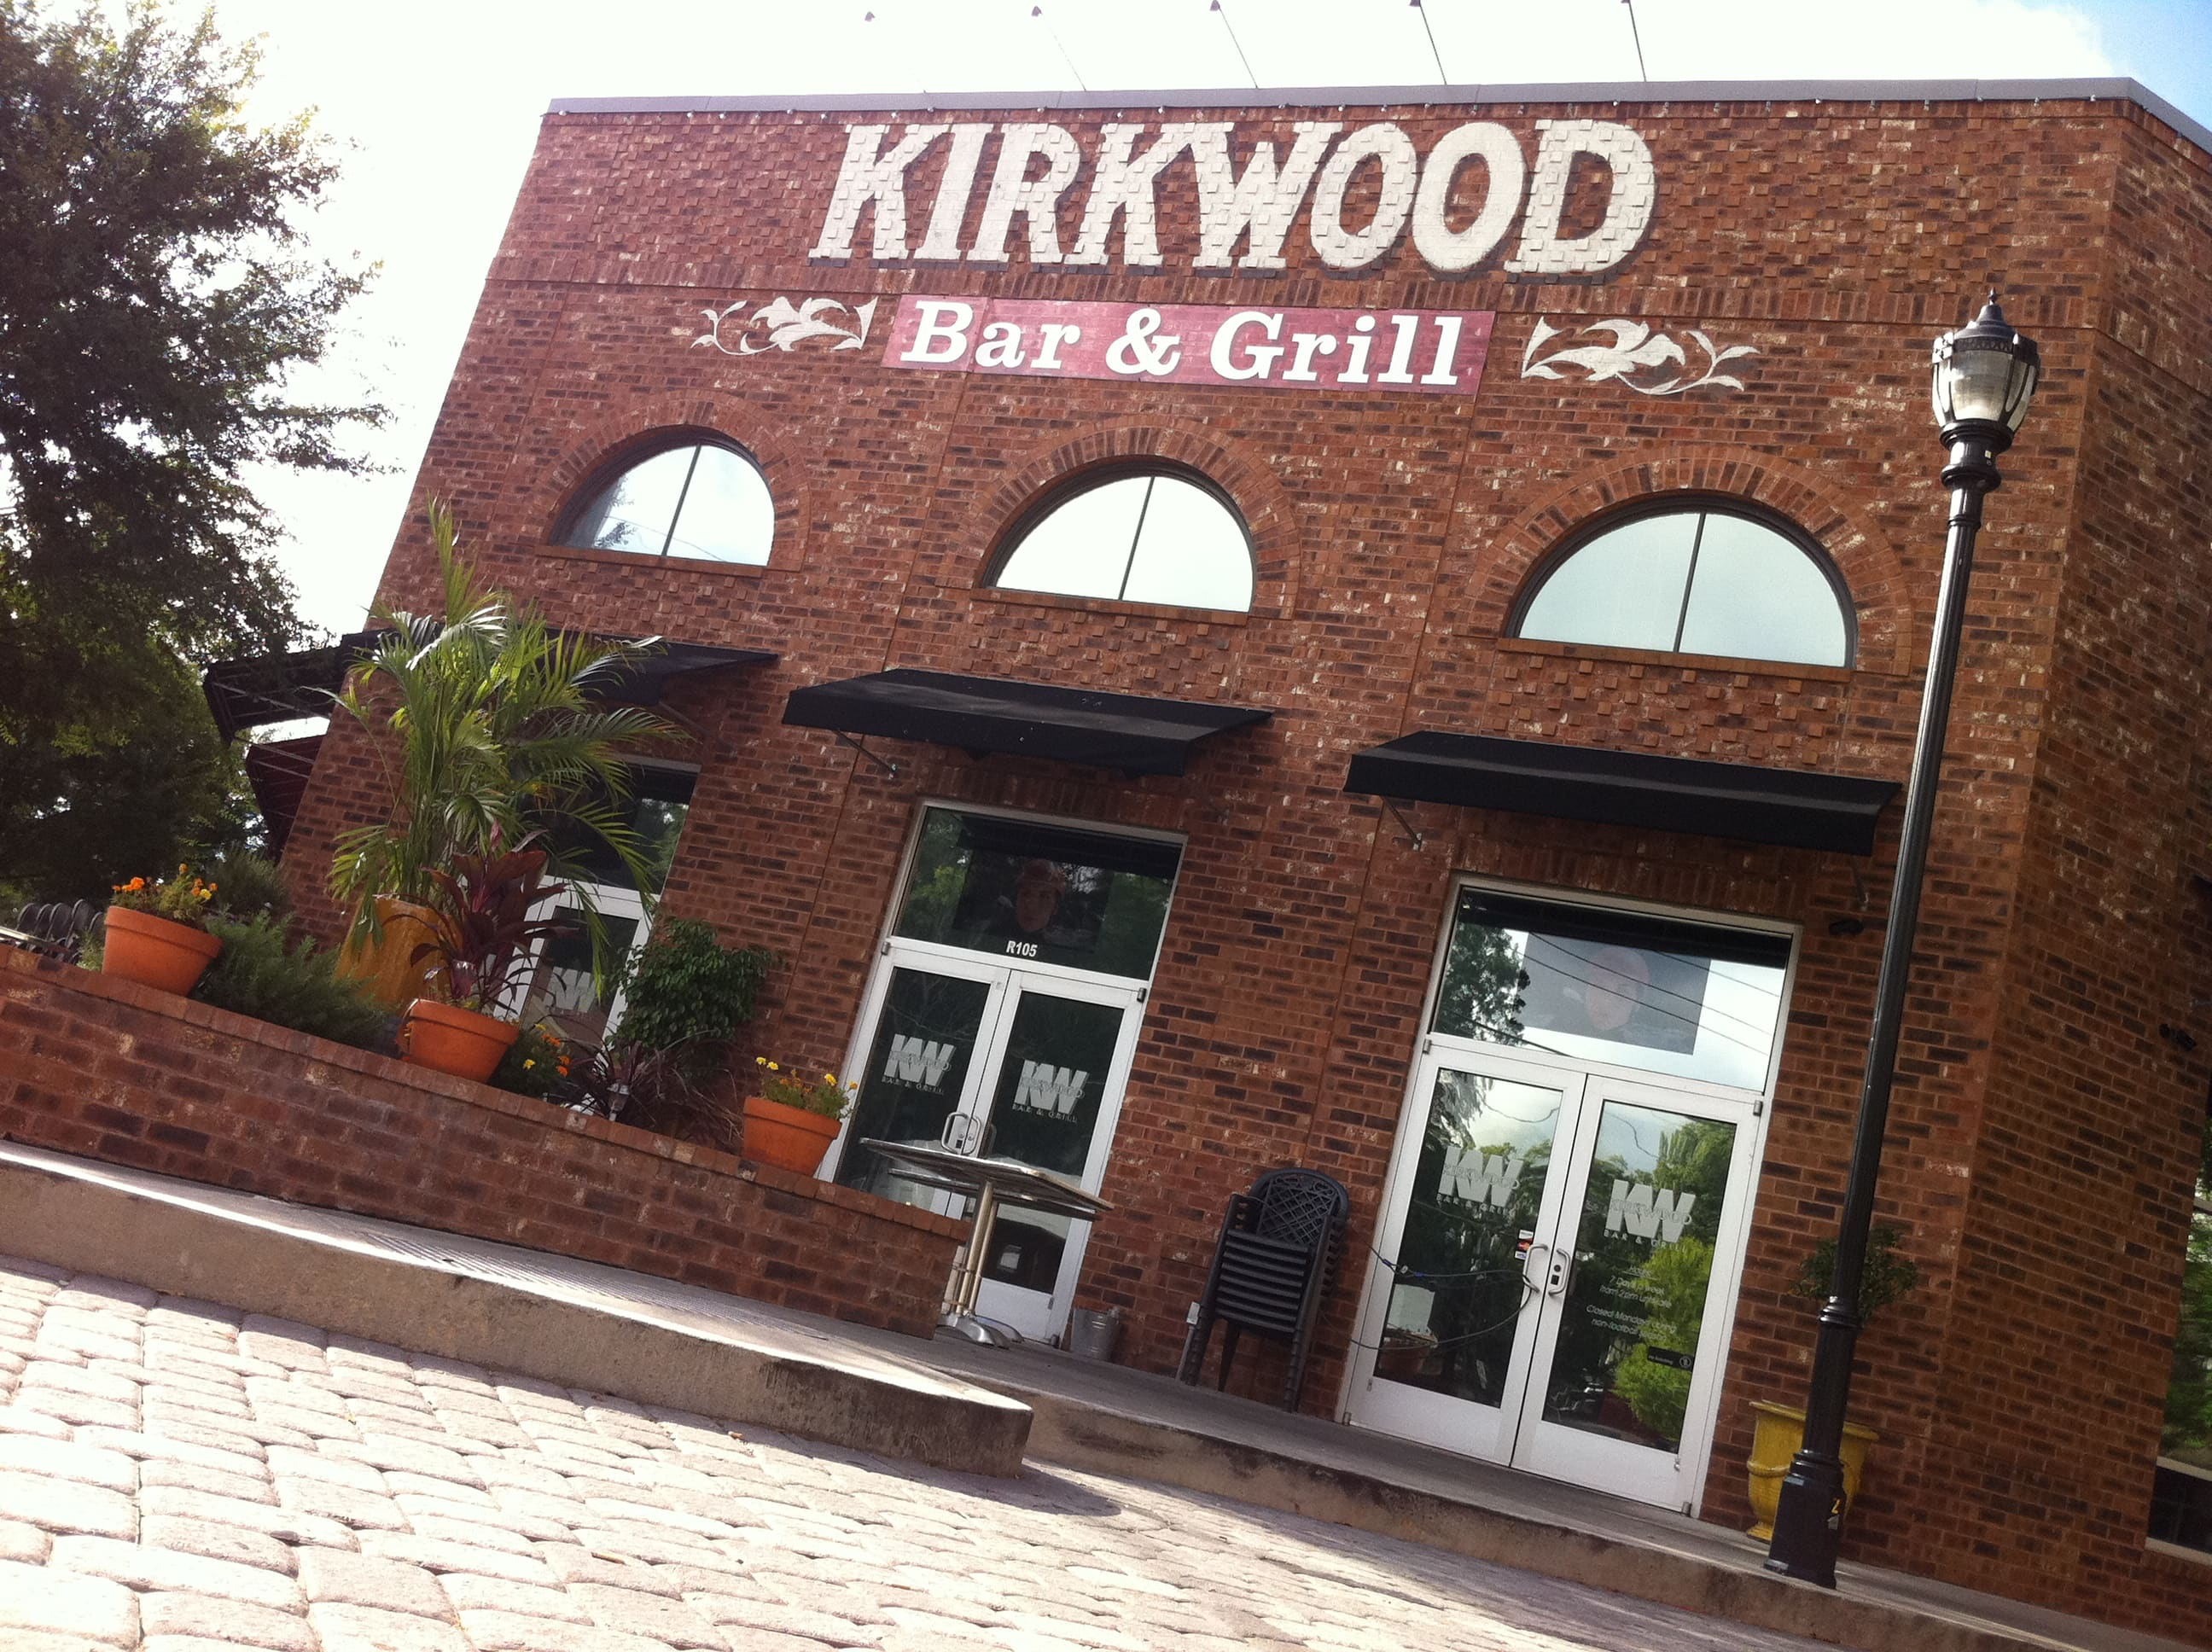 Grilles Tv Bein Sport Residents Try To Shutter Kirkwood Bar And Grill Owner Tweets They